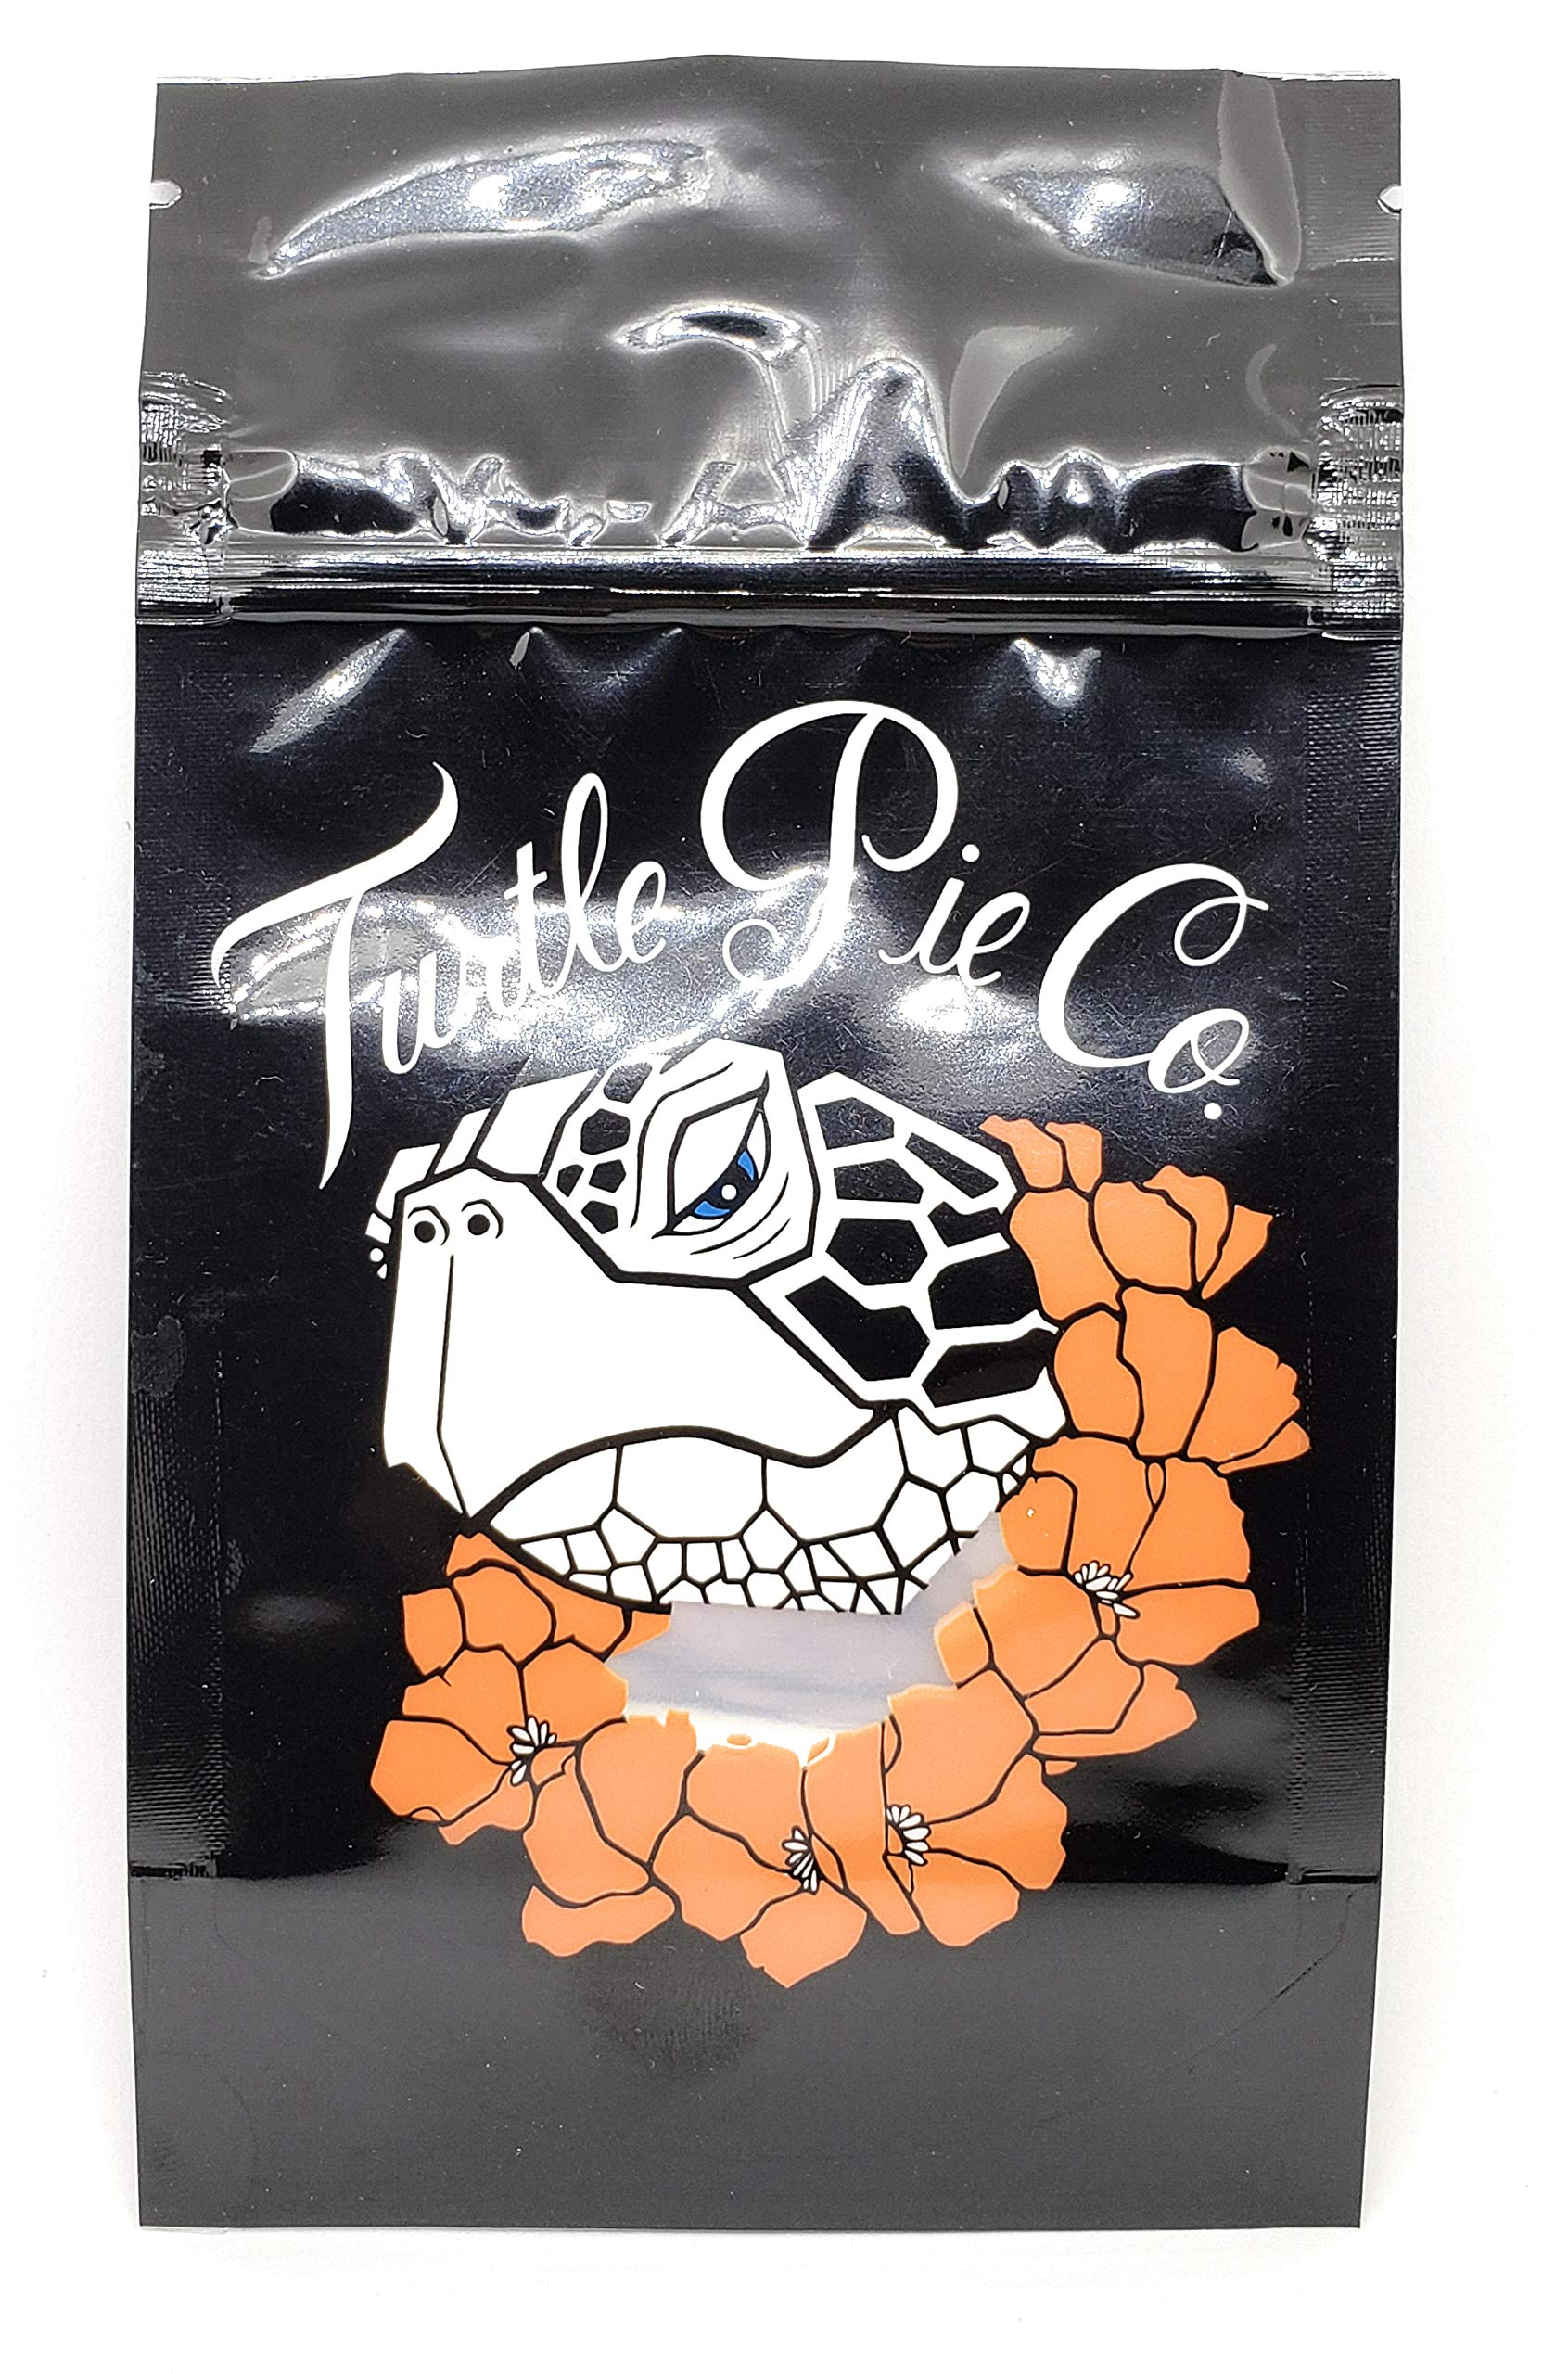 Turtle Pie 7g-14g Mylar Bags (Resealable, Reusable, Childproof) (50) by Cookie of SF